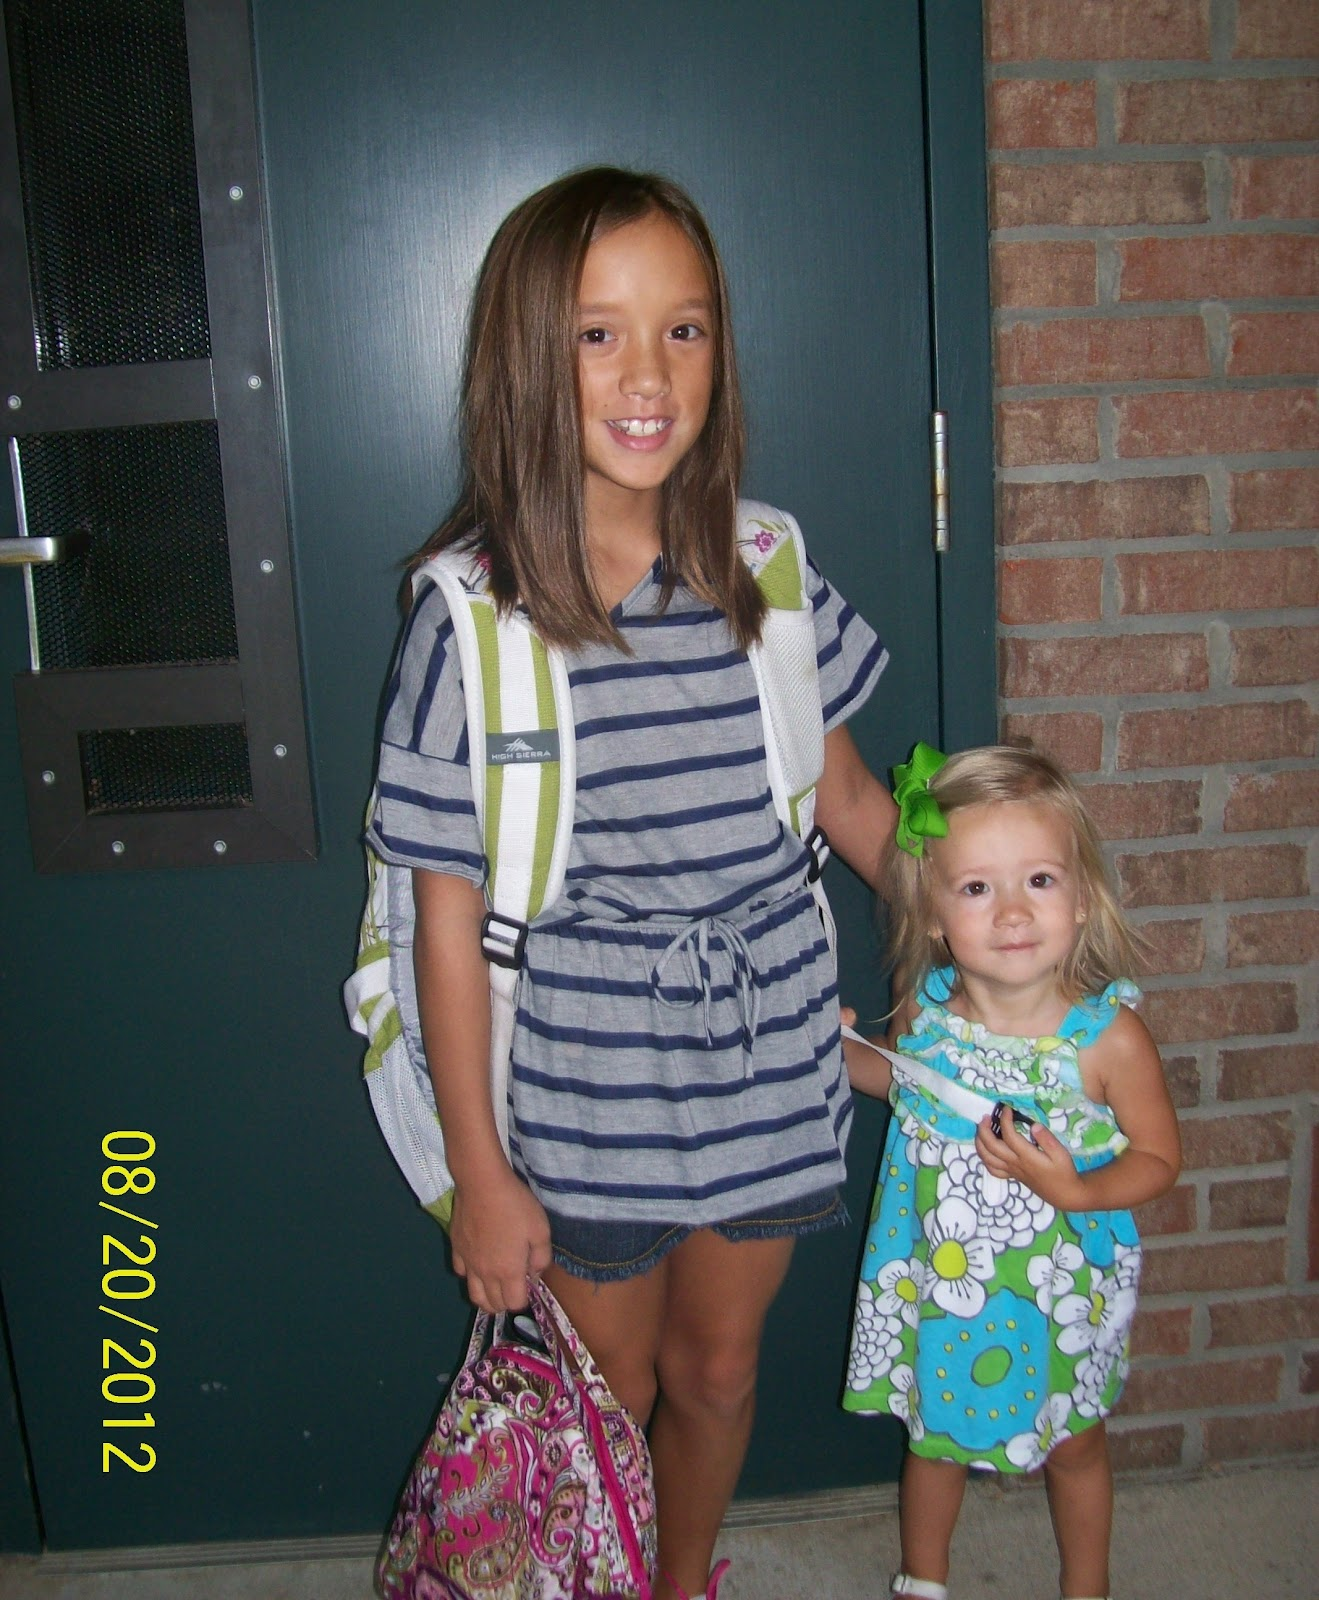 Happily Chaotic: Kaylyn's First Day of 4th Grade